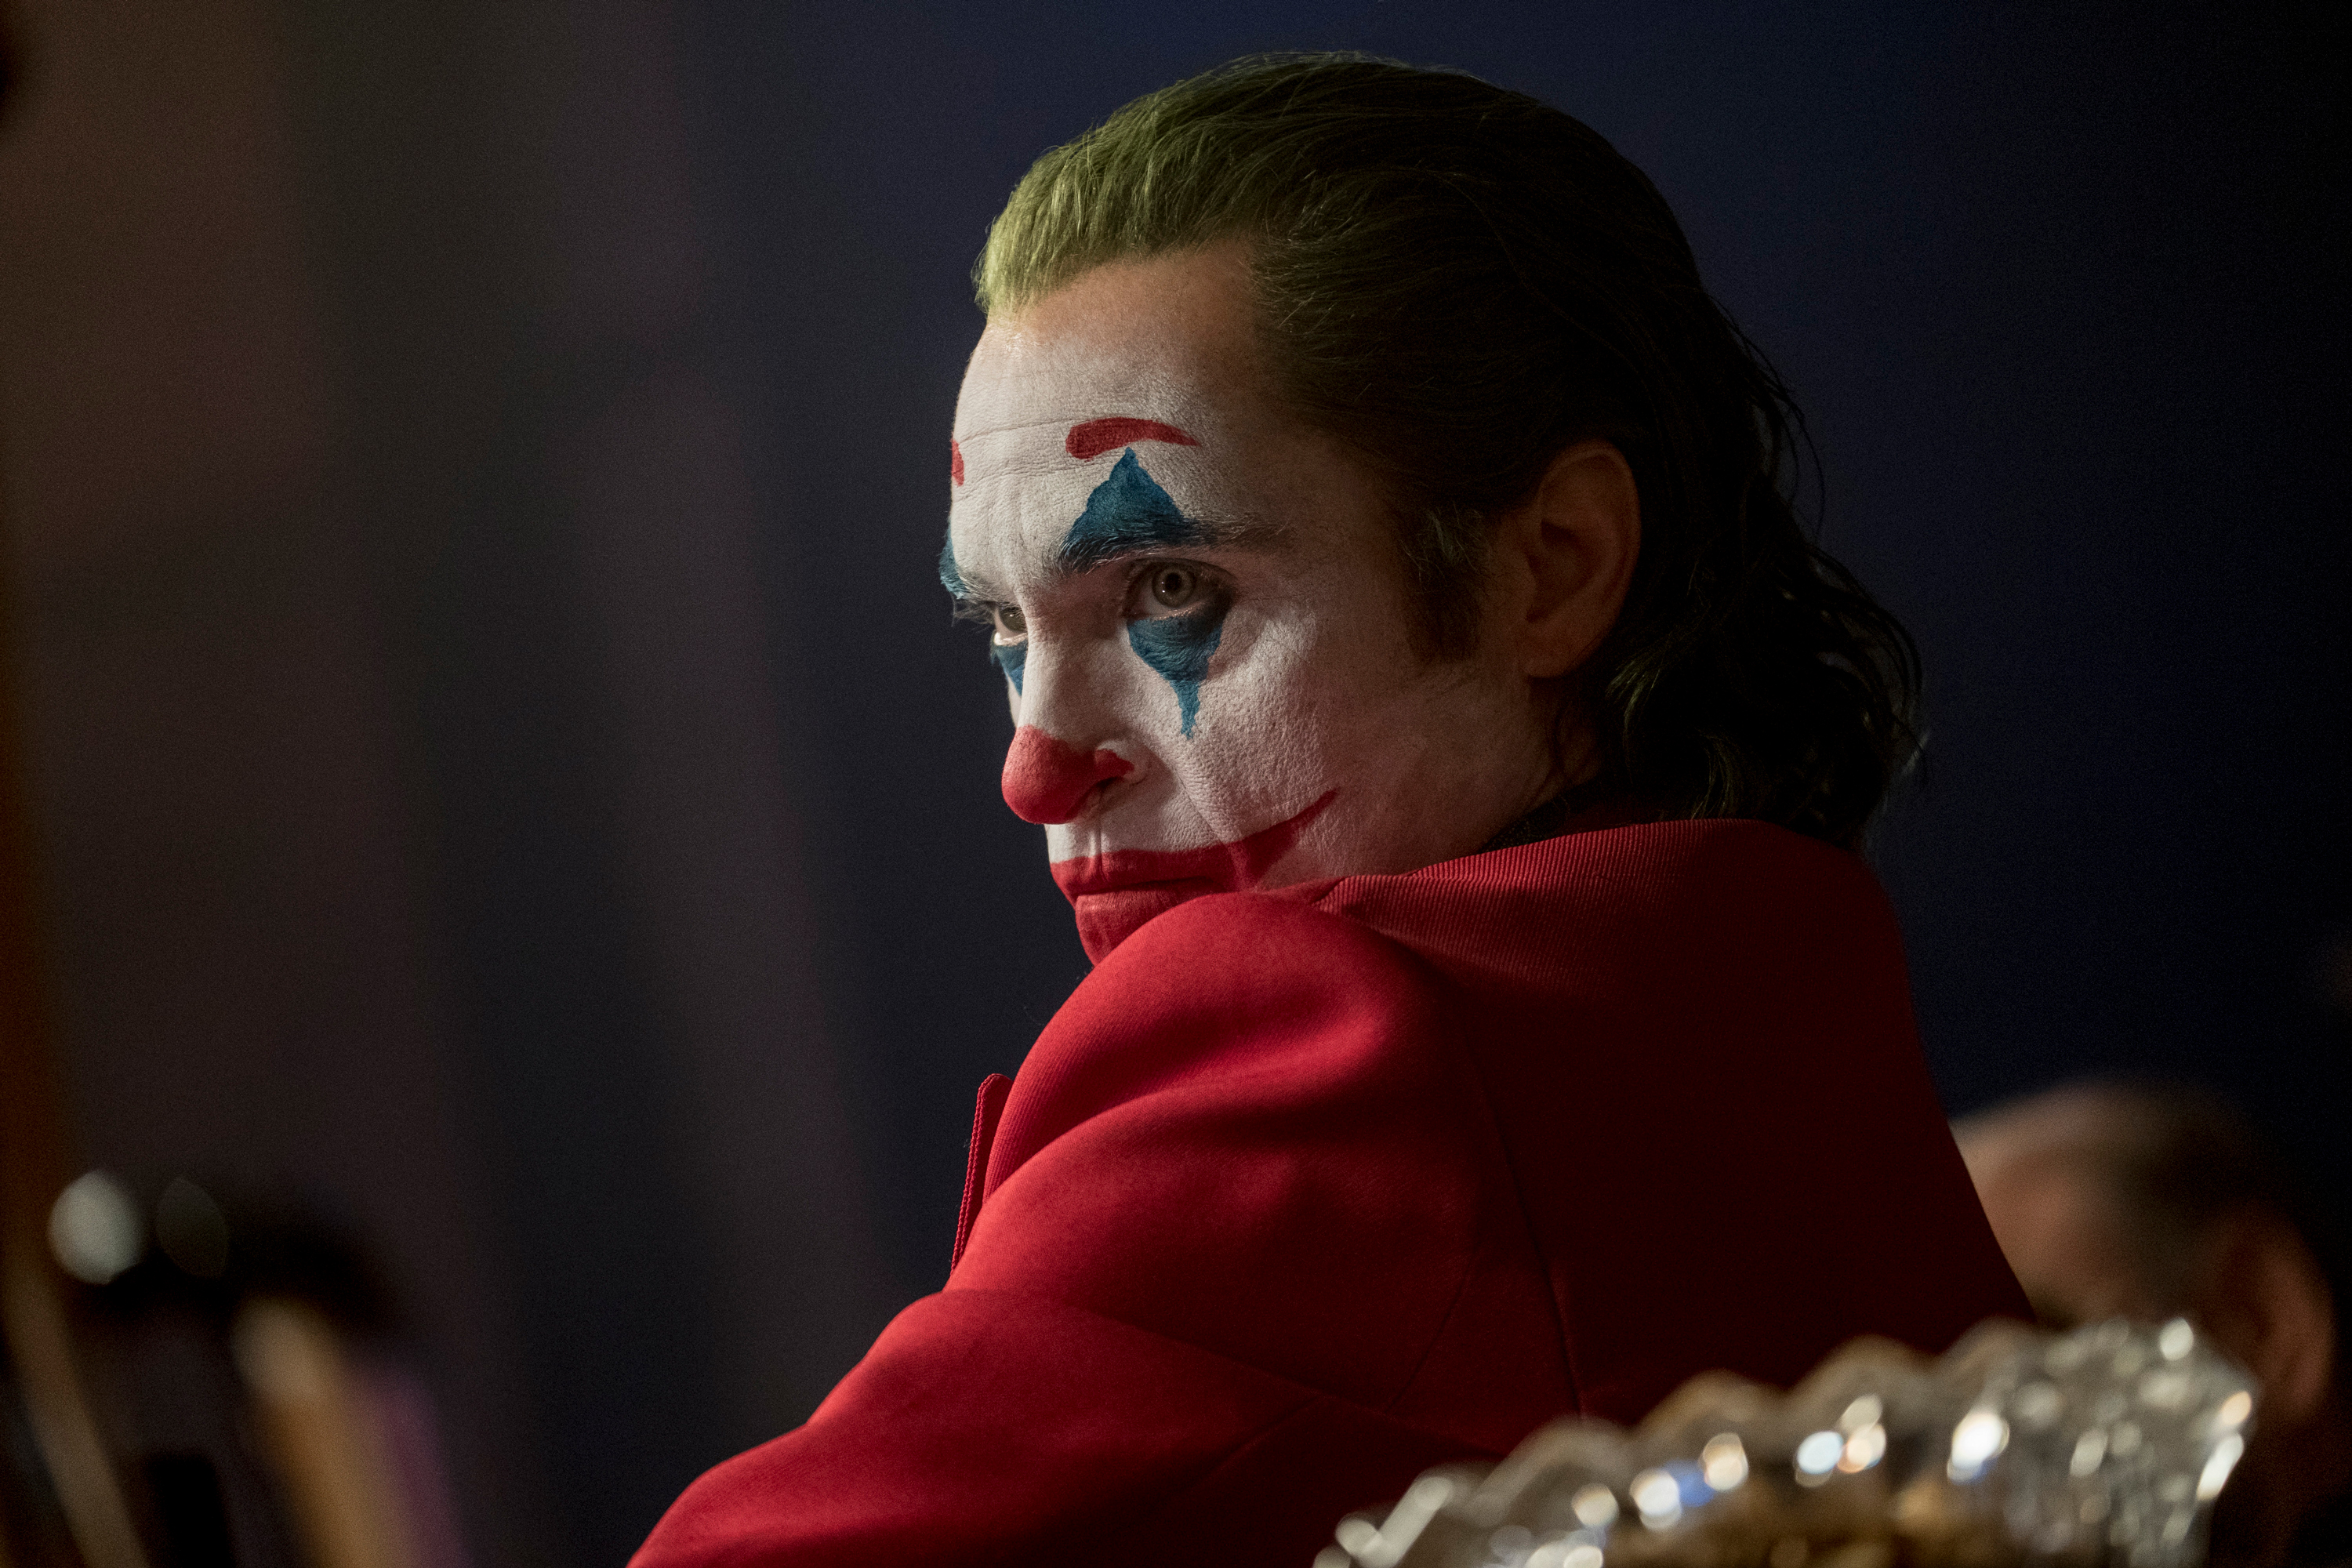 For The Families Of Aurora Theater Victims Joker Depicts A Vision Too Close For Comfort To Reality Colorado Public Radio